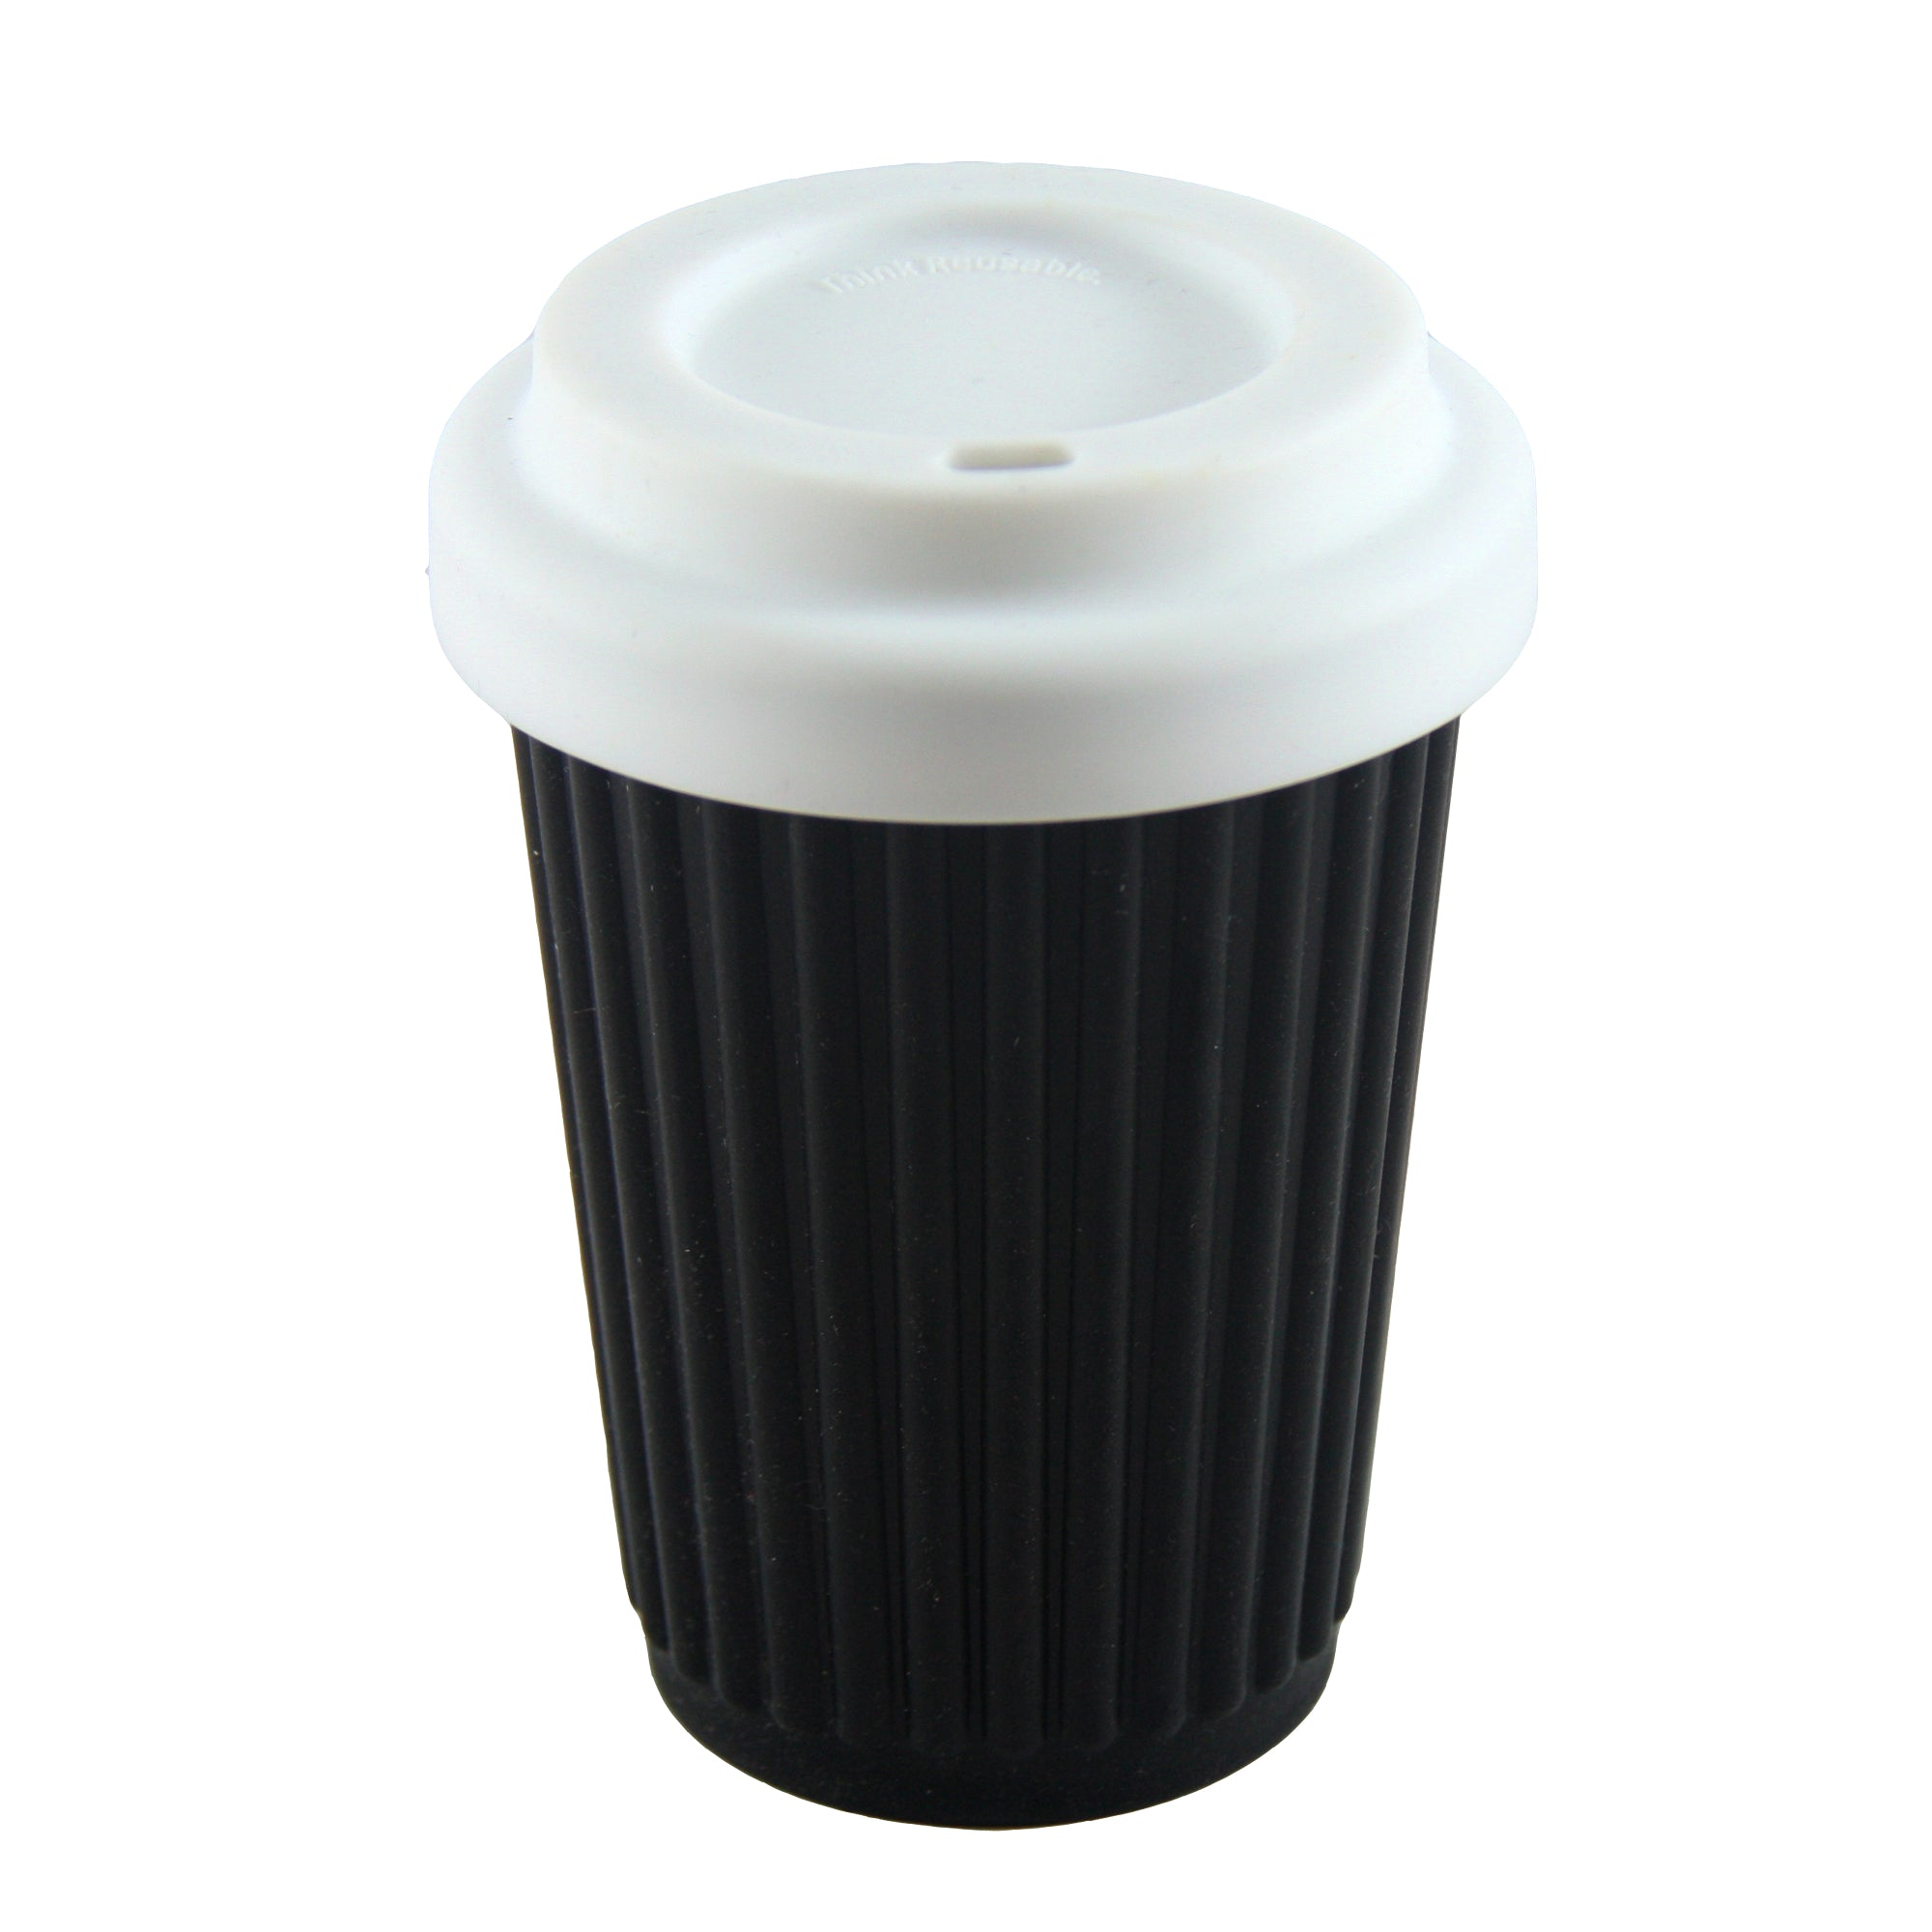 Onya | Reusable coffee cup 355ml/12oz | Plastic Free Living | Environmentally Friendly Homewares